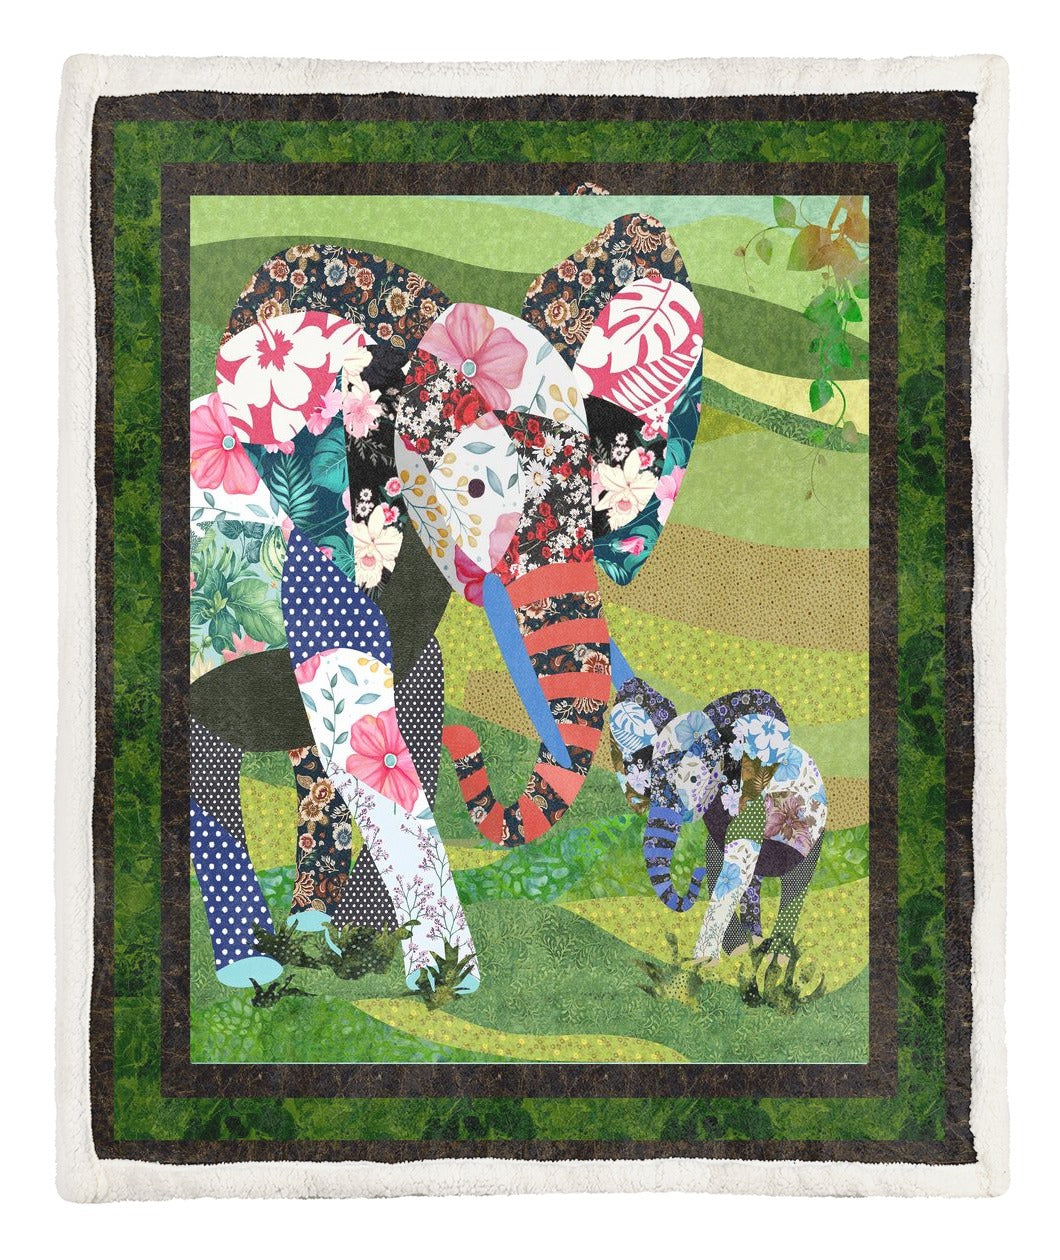 elephant-throw-blanket-tabccc19102744